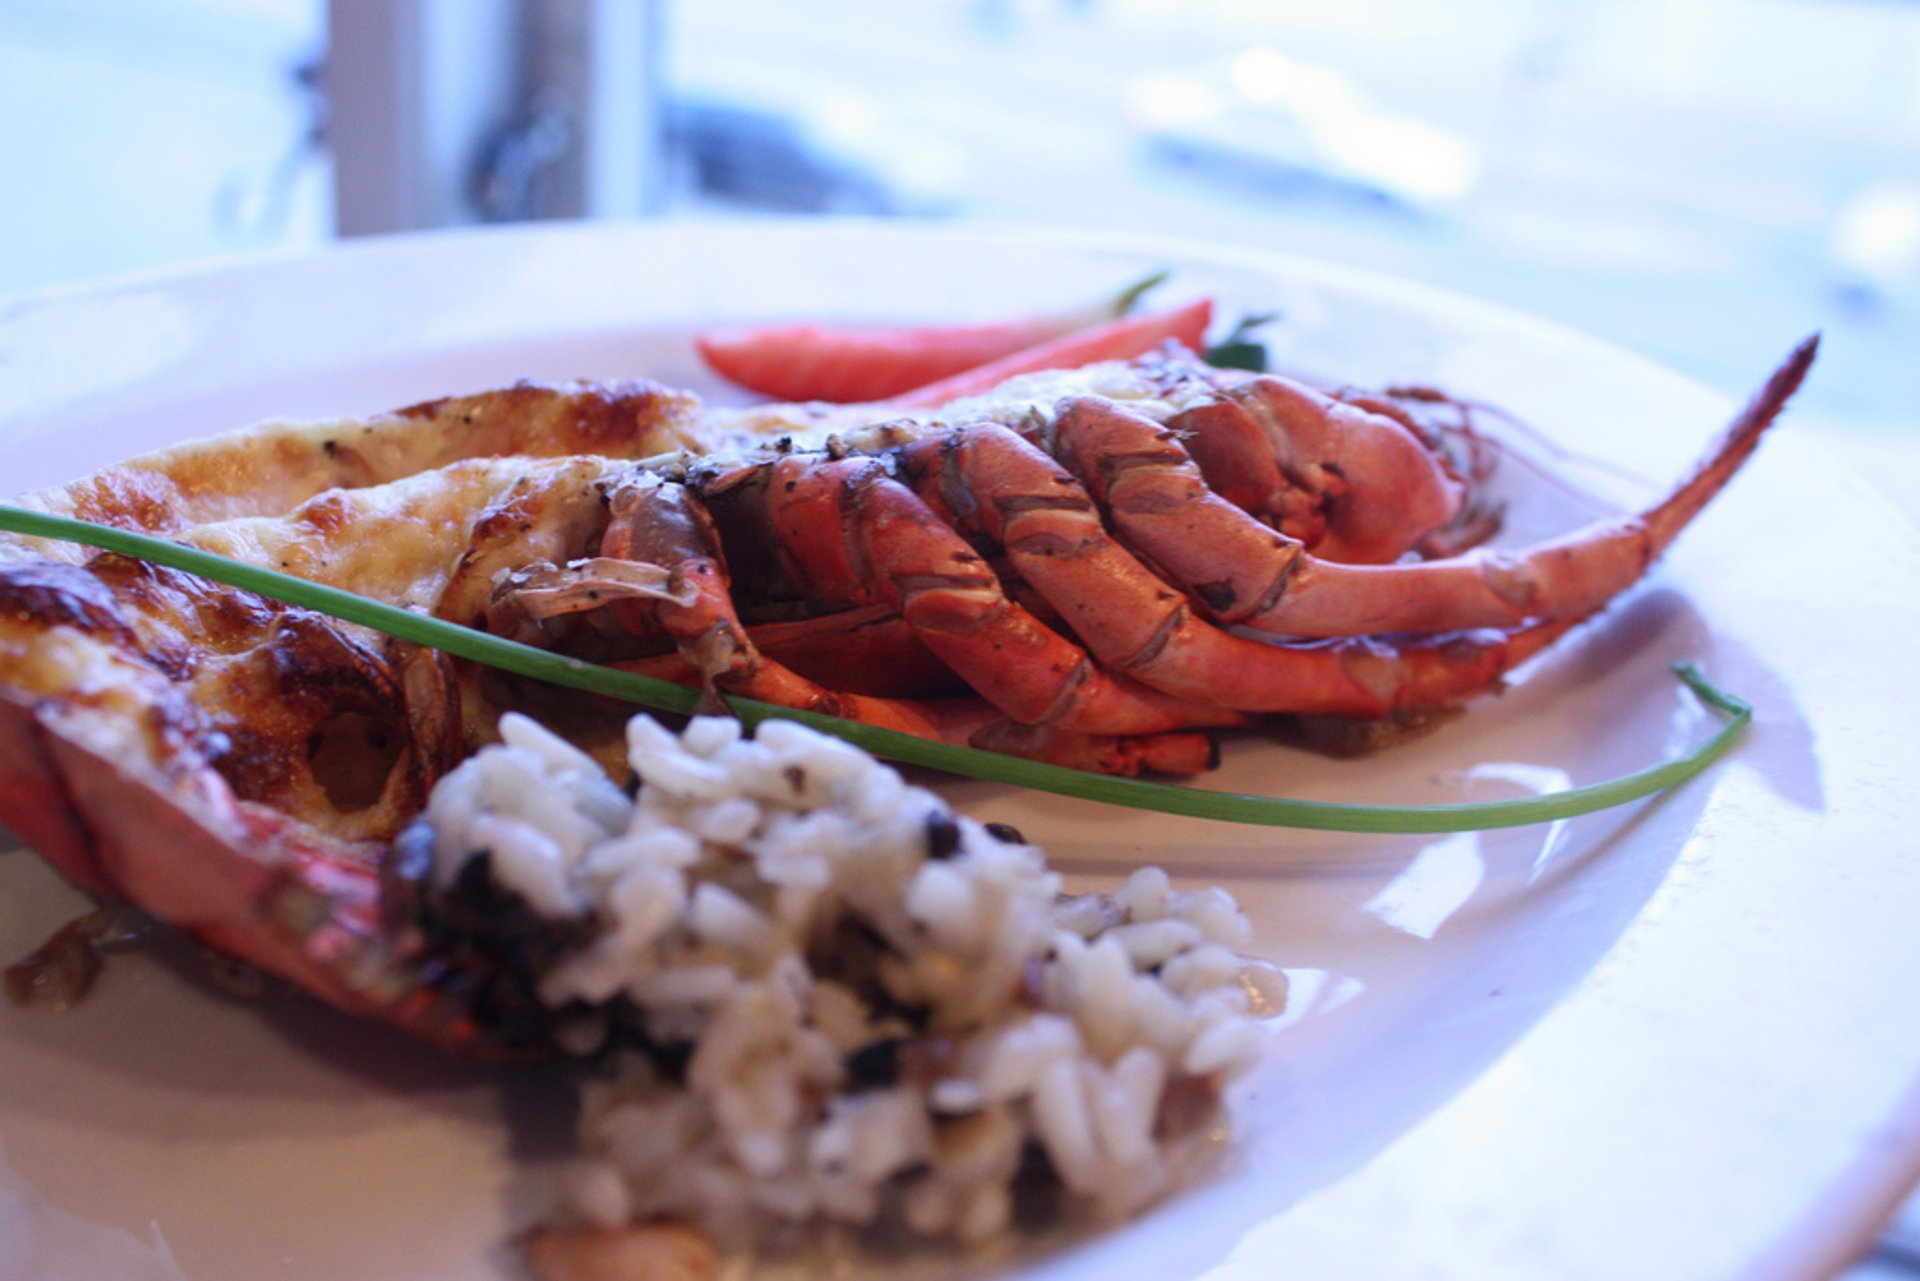 Norwegian Lobster in Norway - Best Season 2020